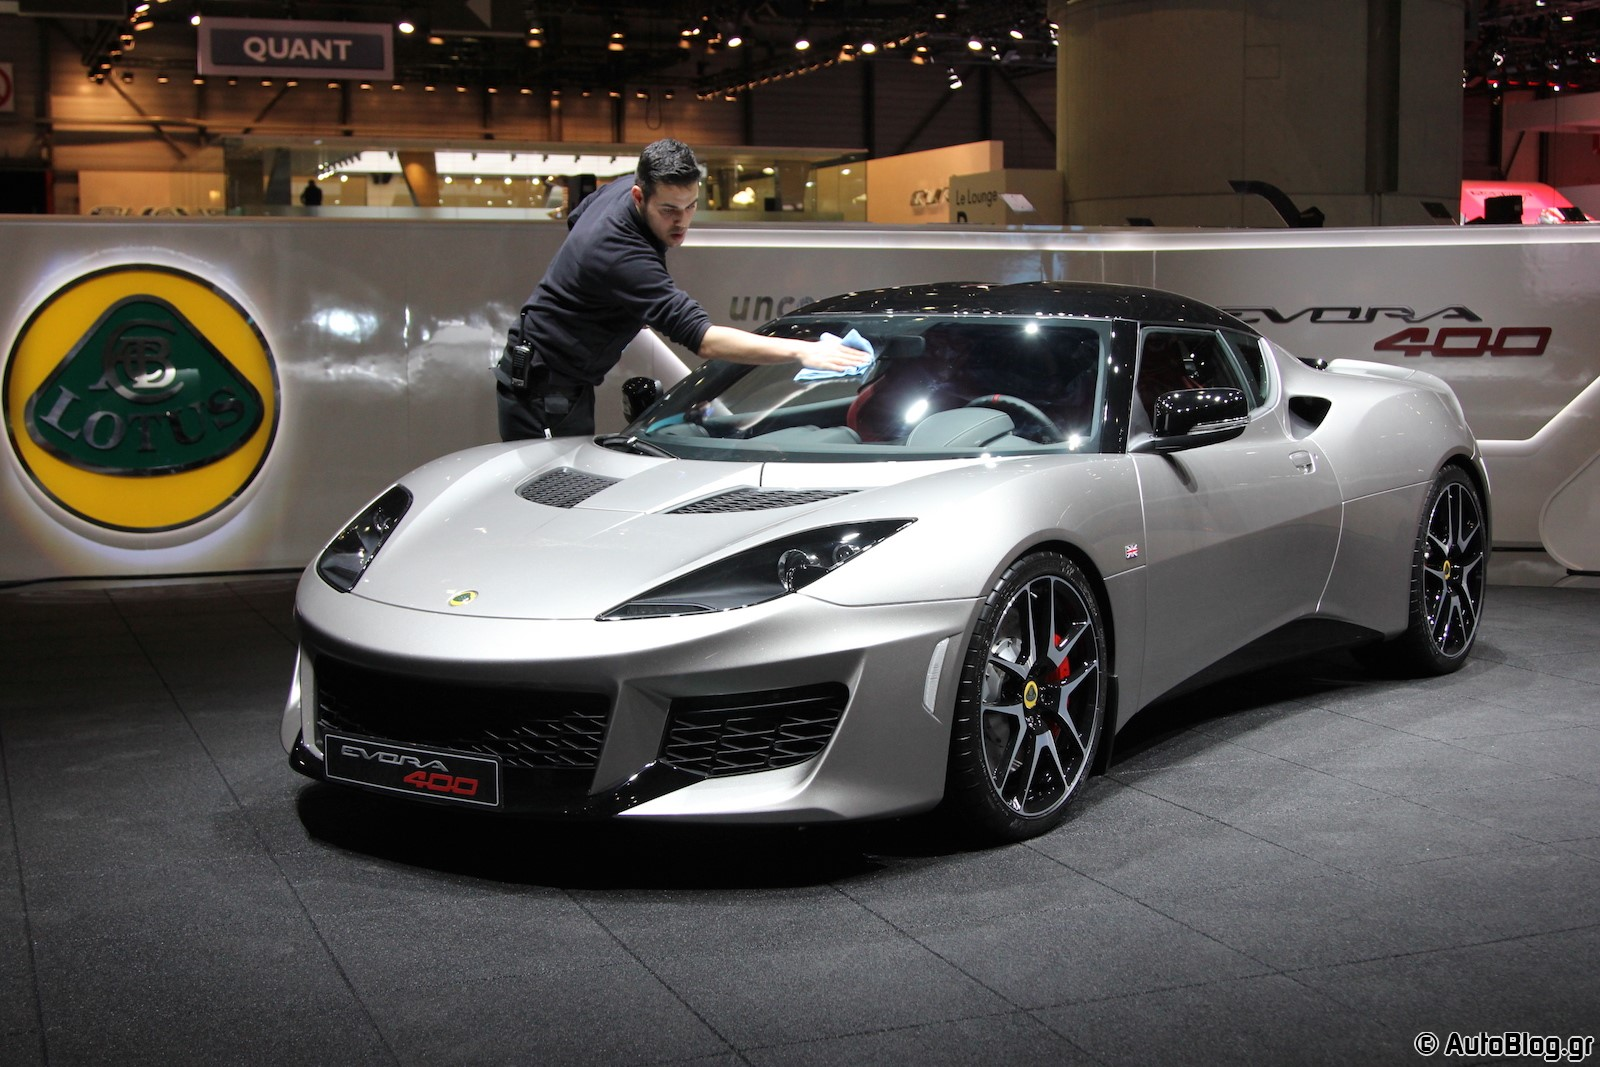 2019 Lotus Evora photo - 1